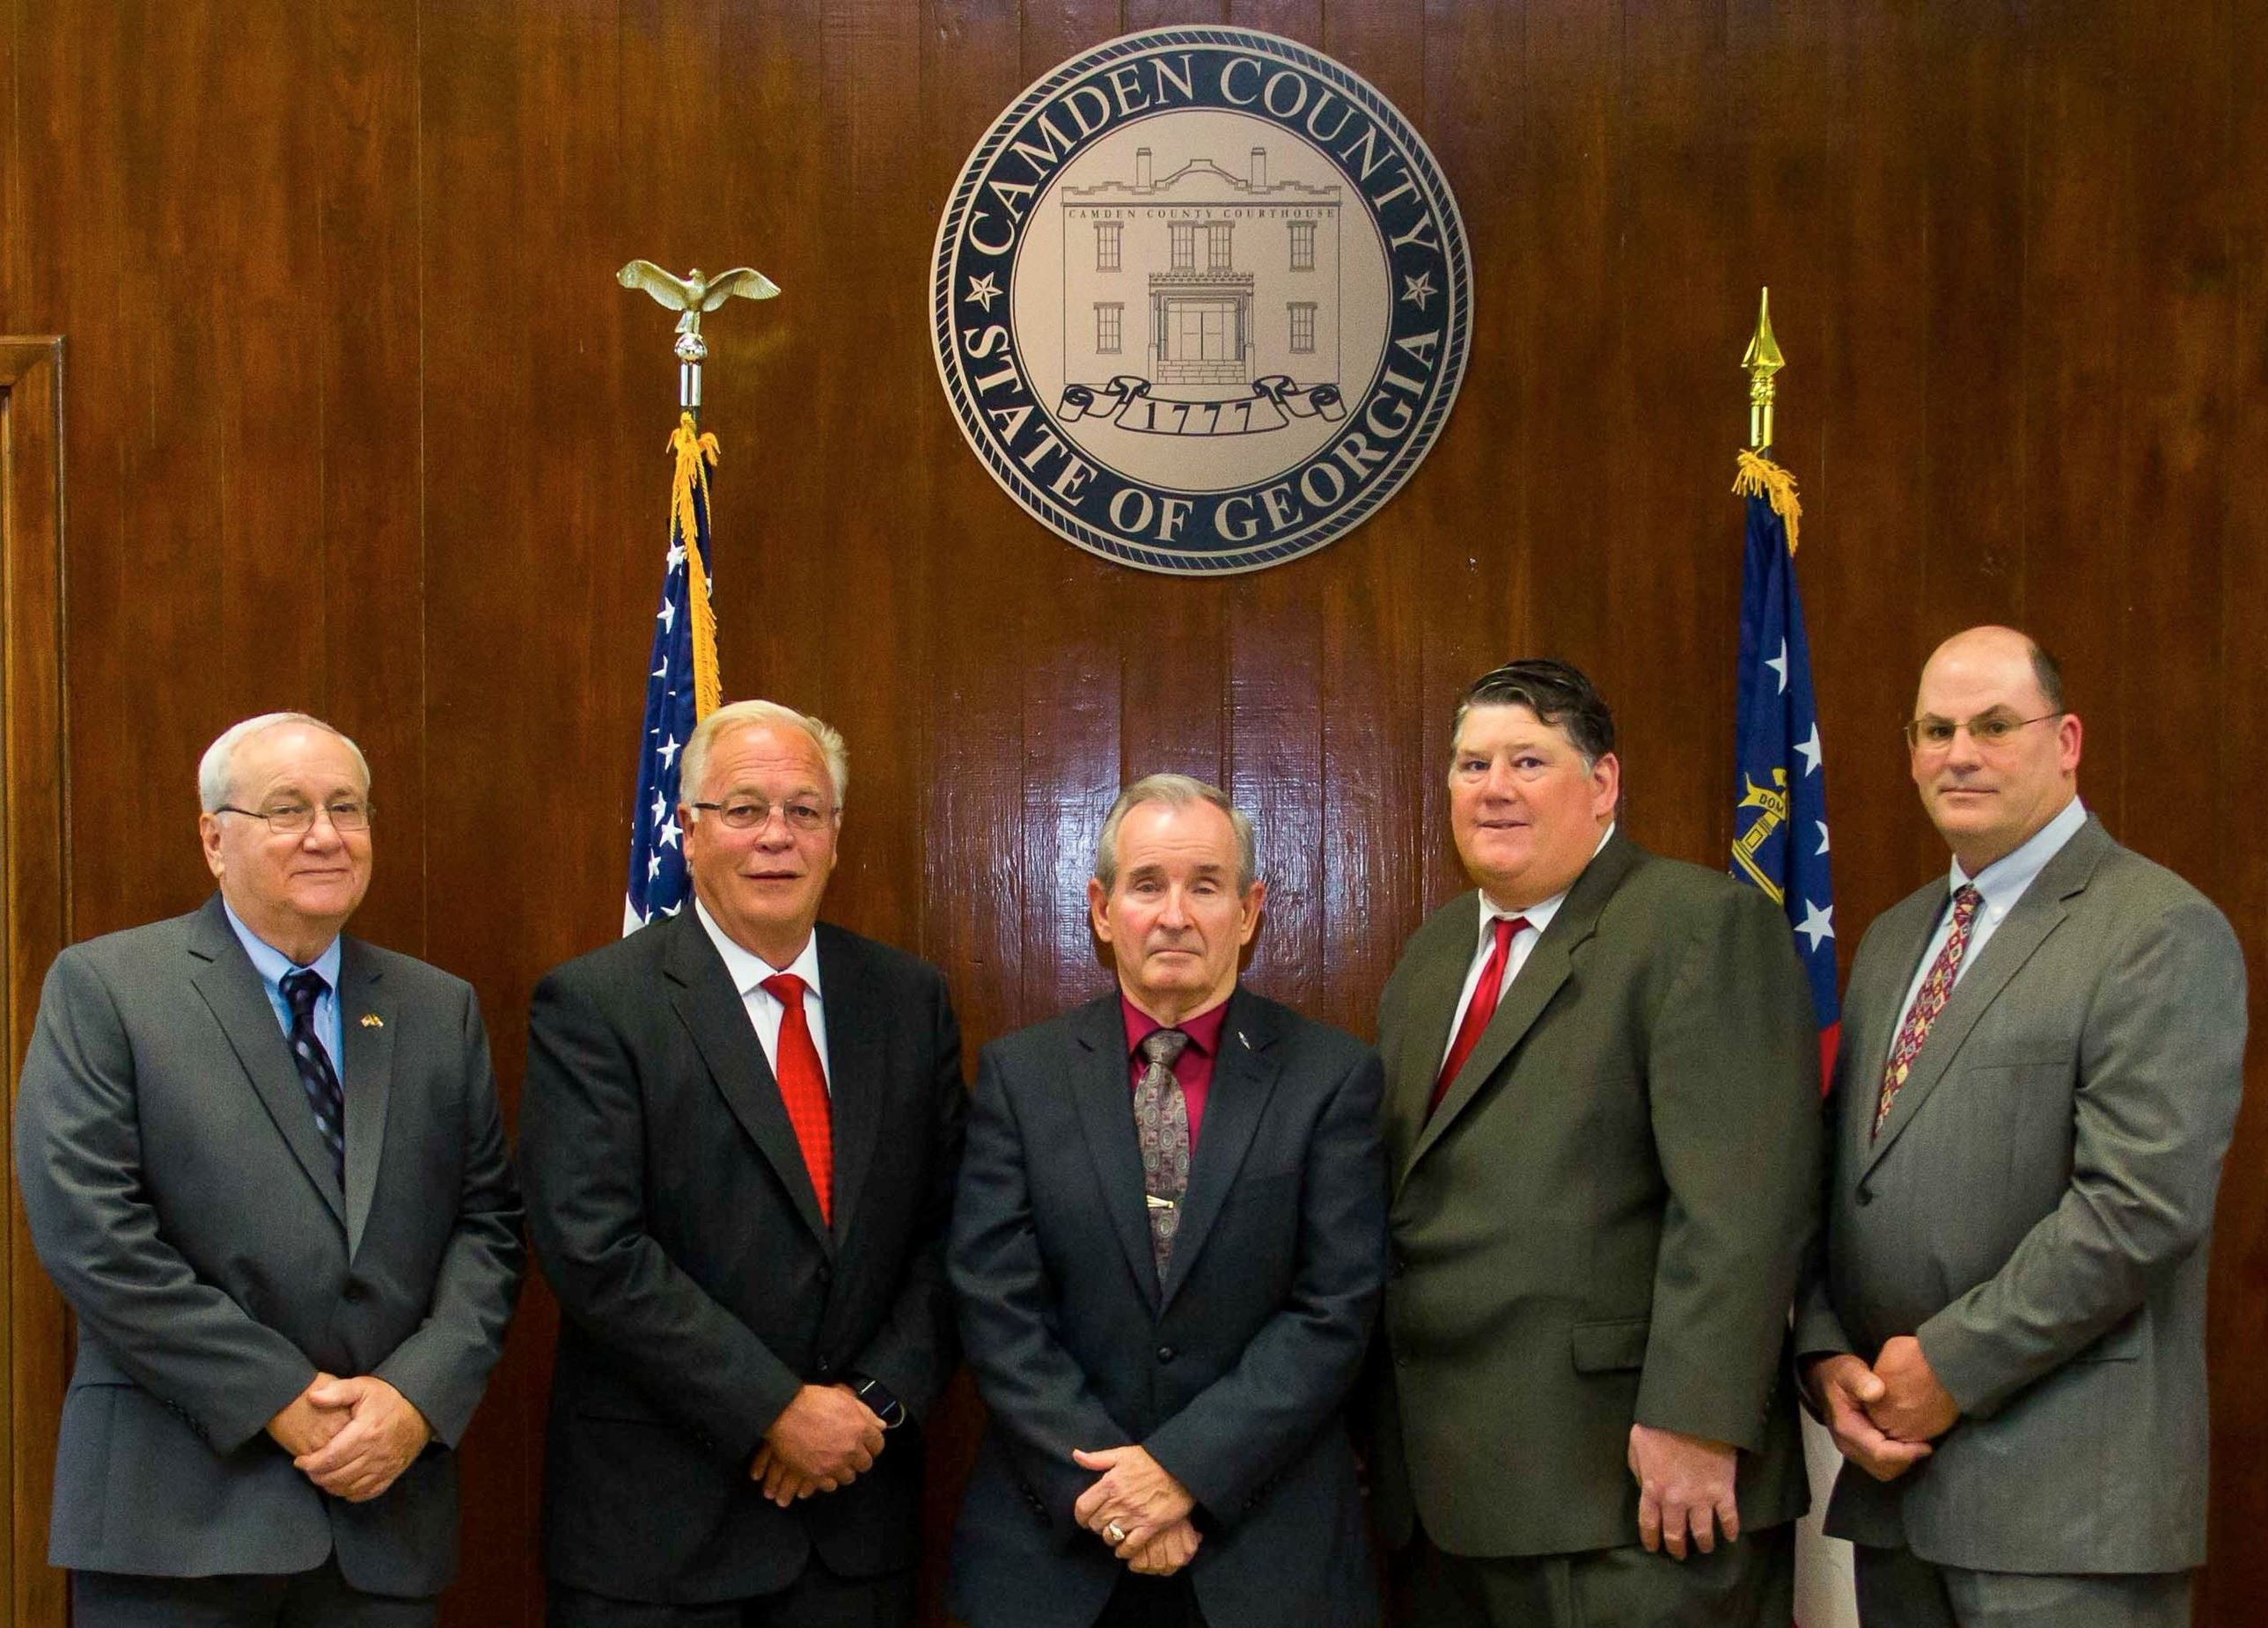 2018 Camden County Board of Commissioners